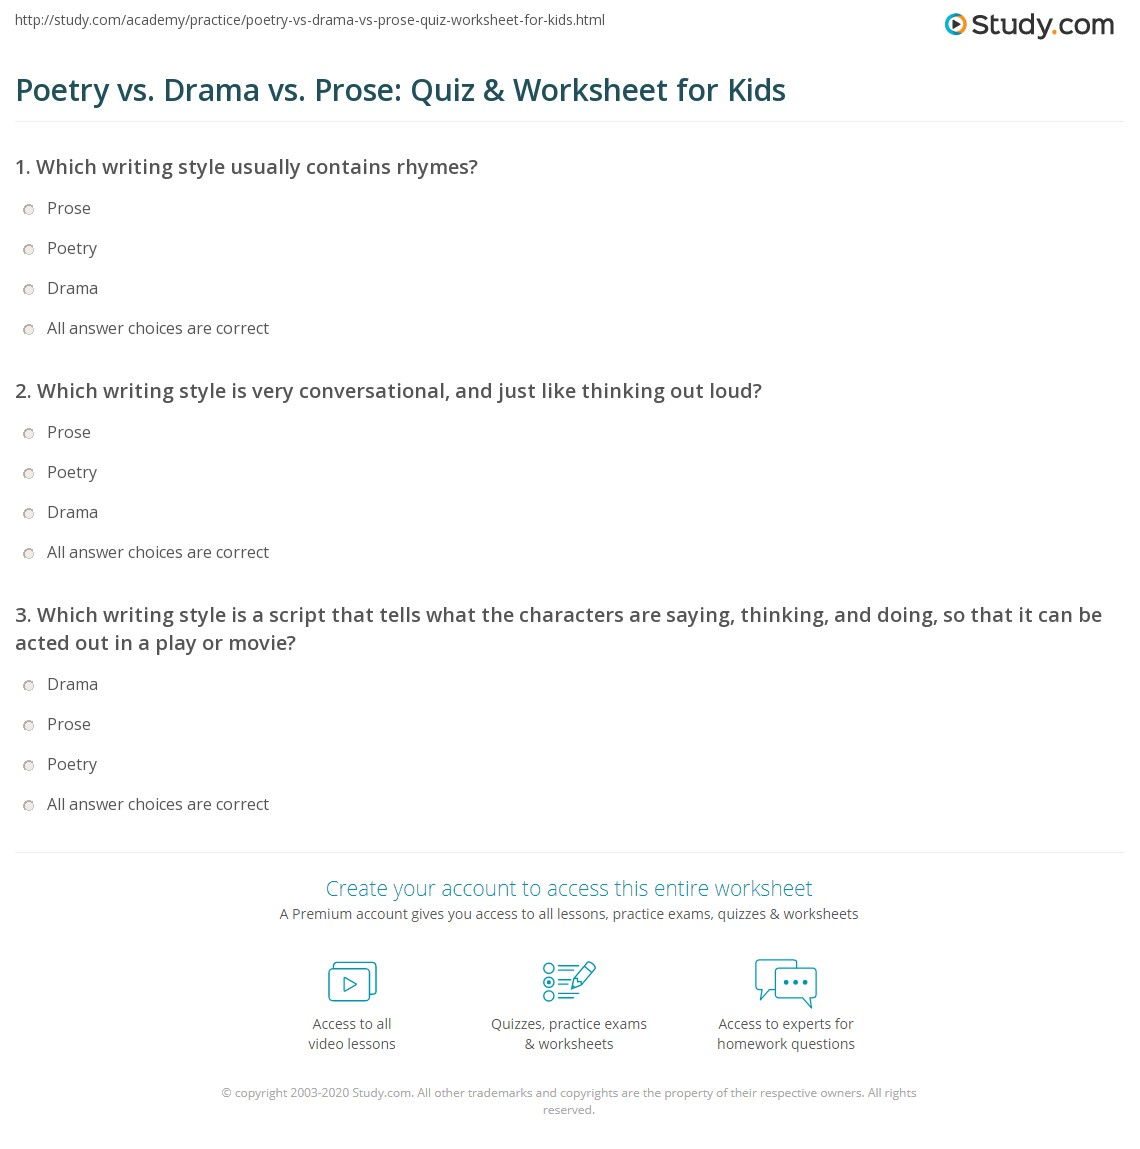 Poetry Vs Drama Vs Prose Quiz Amp Worksheet For Kids